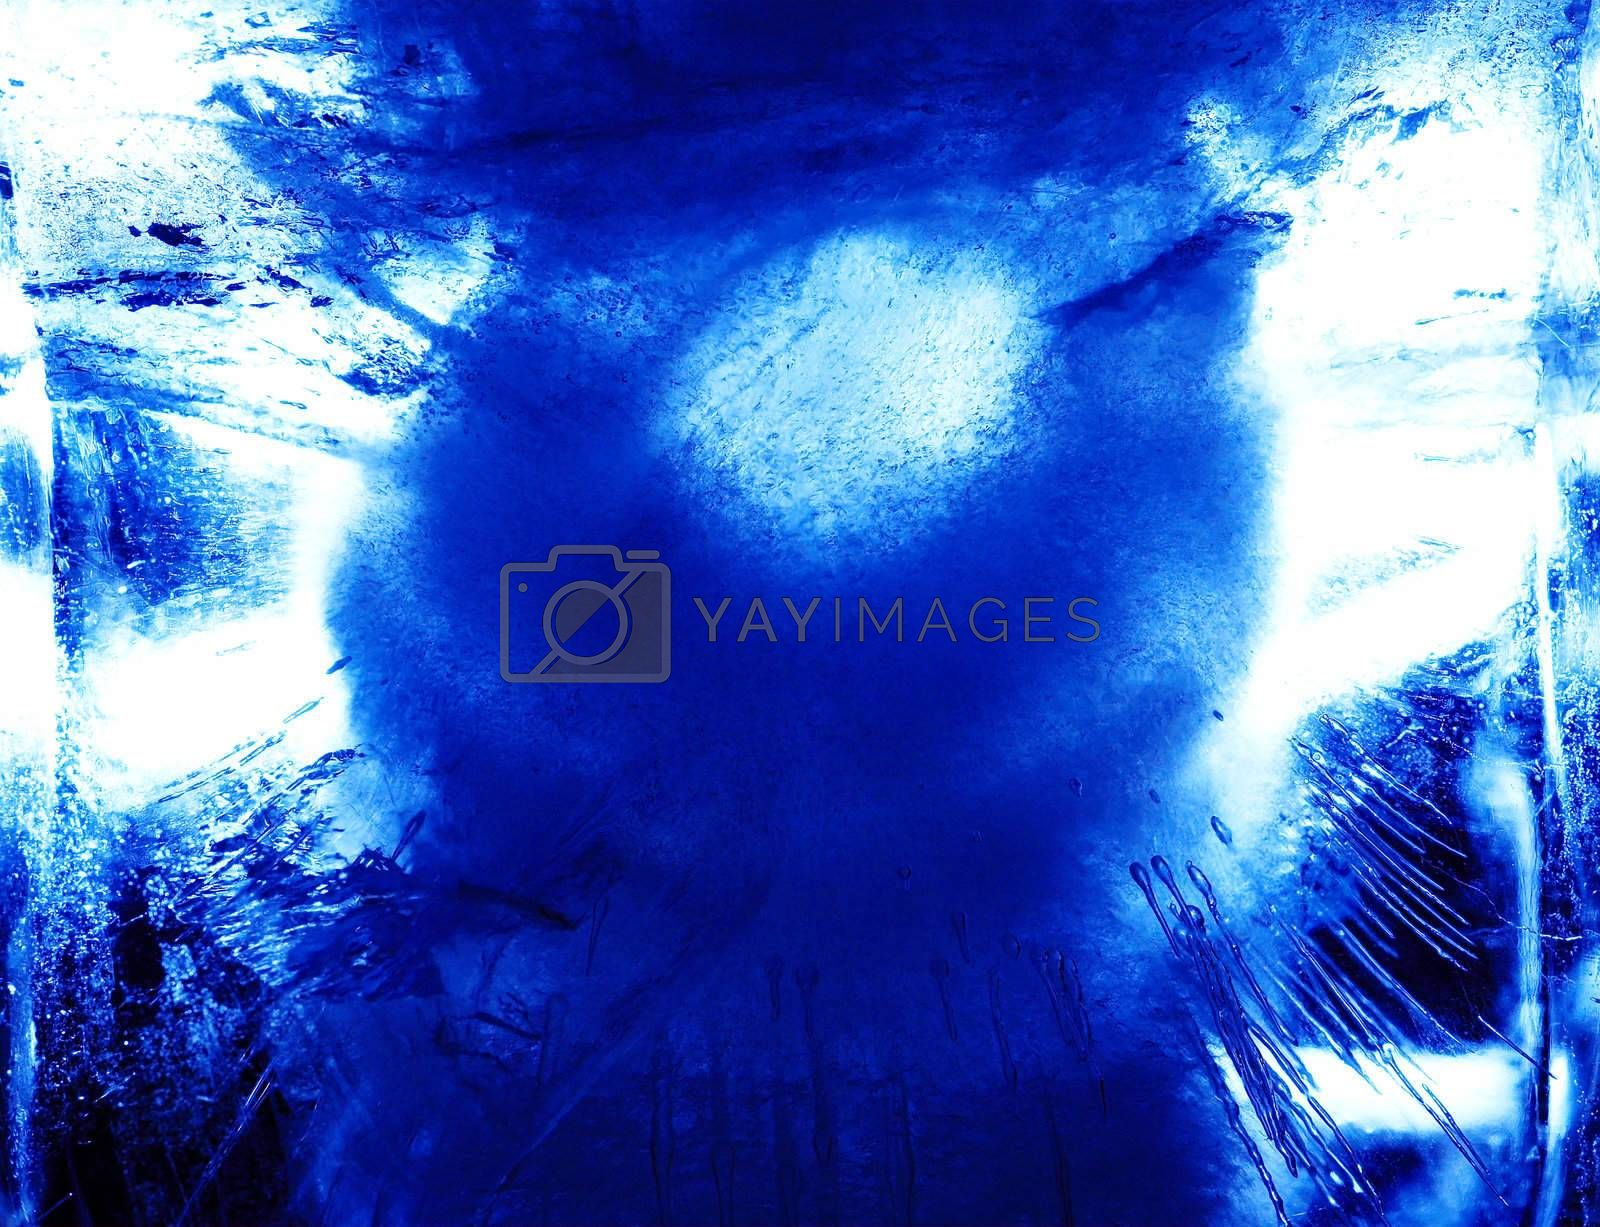 Royalty free image of Abstract ice figure, model 2 by DeusNoxious